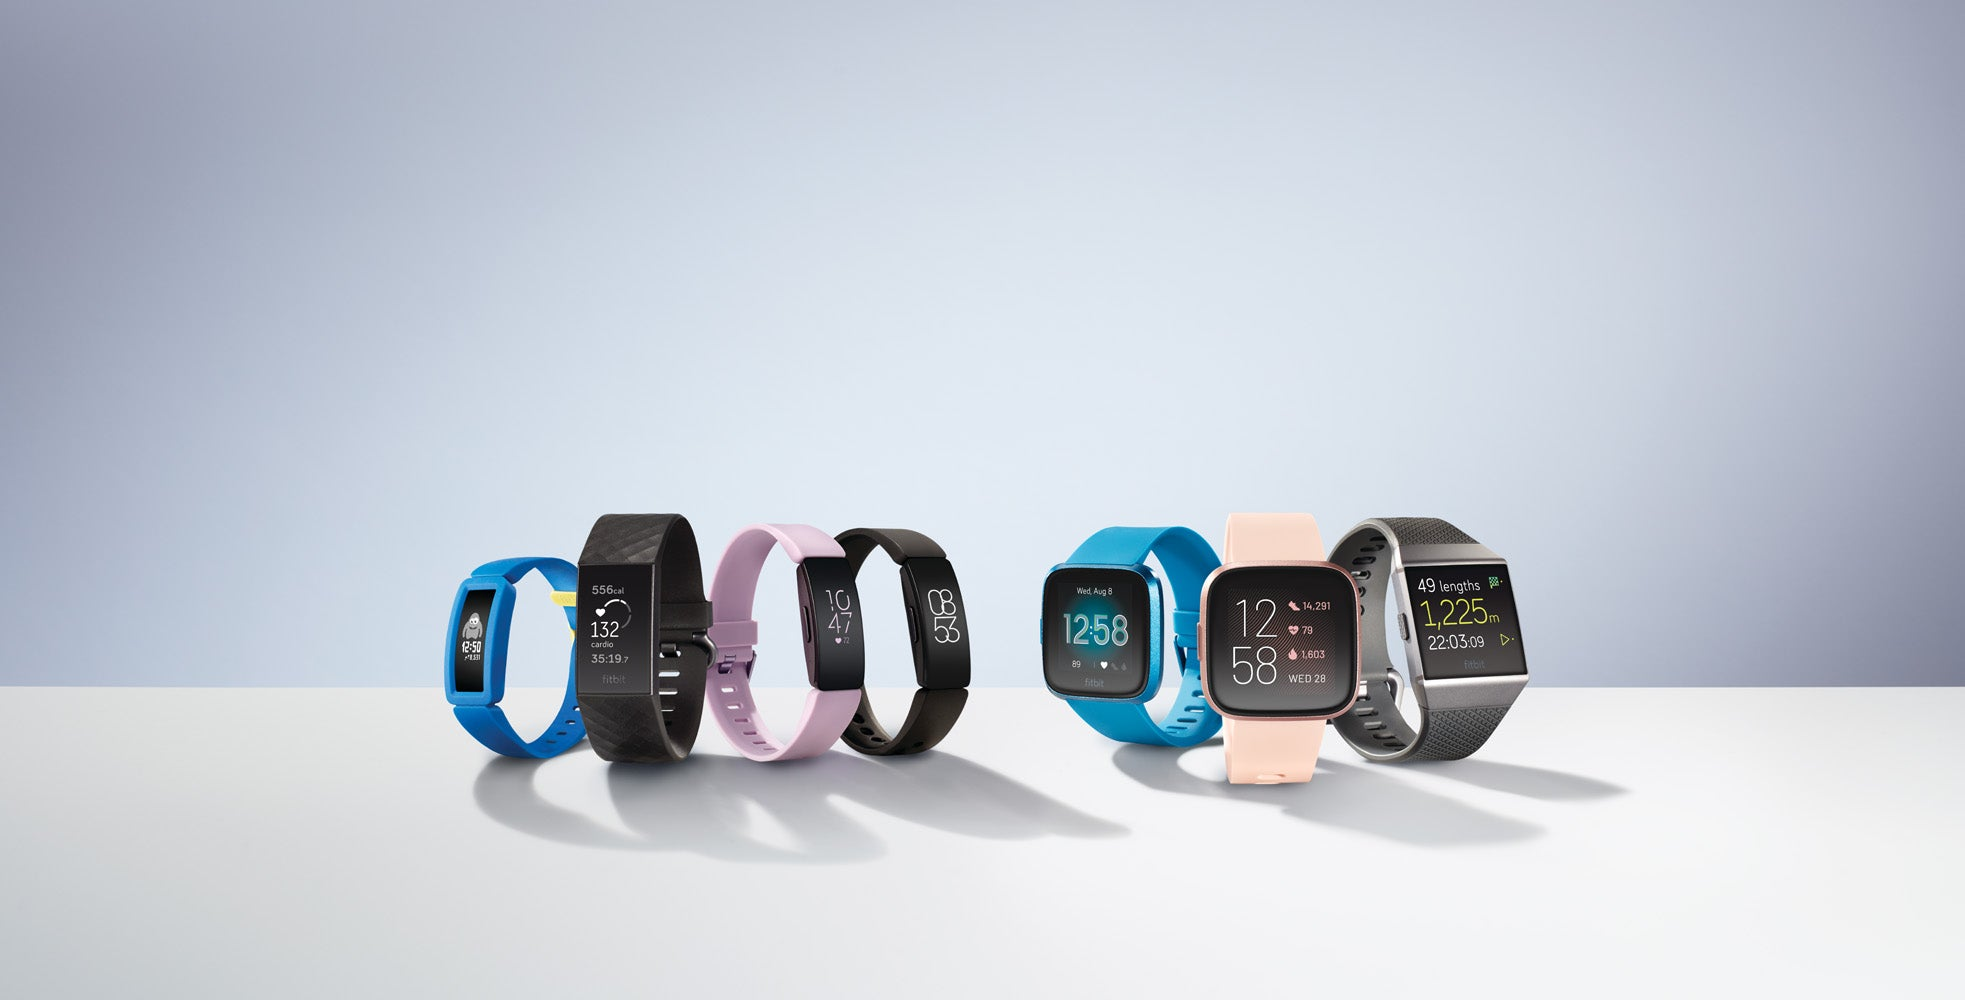 Google Might Need to Make Sacrifices to Close Fitbit Deal | The Motley Fool